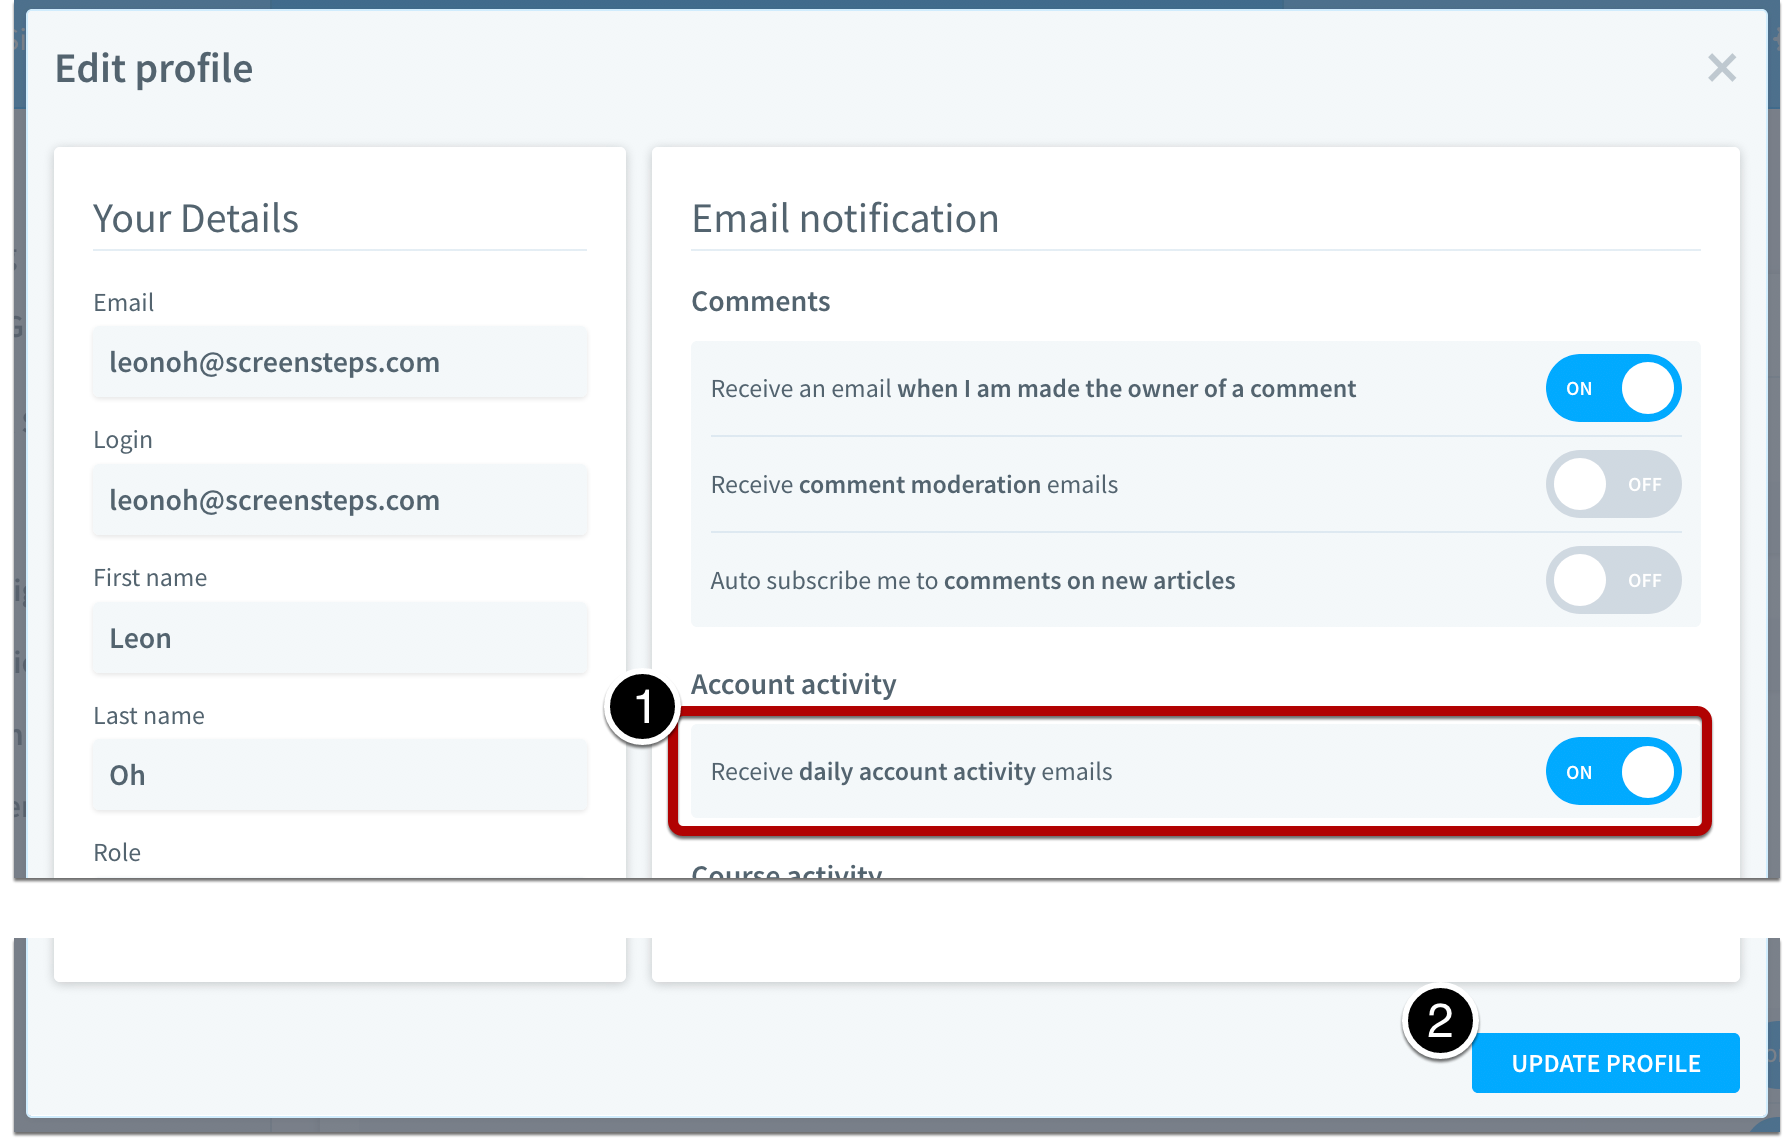 Select Receive daily account activity emails